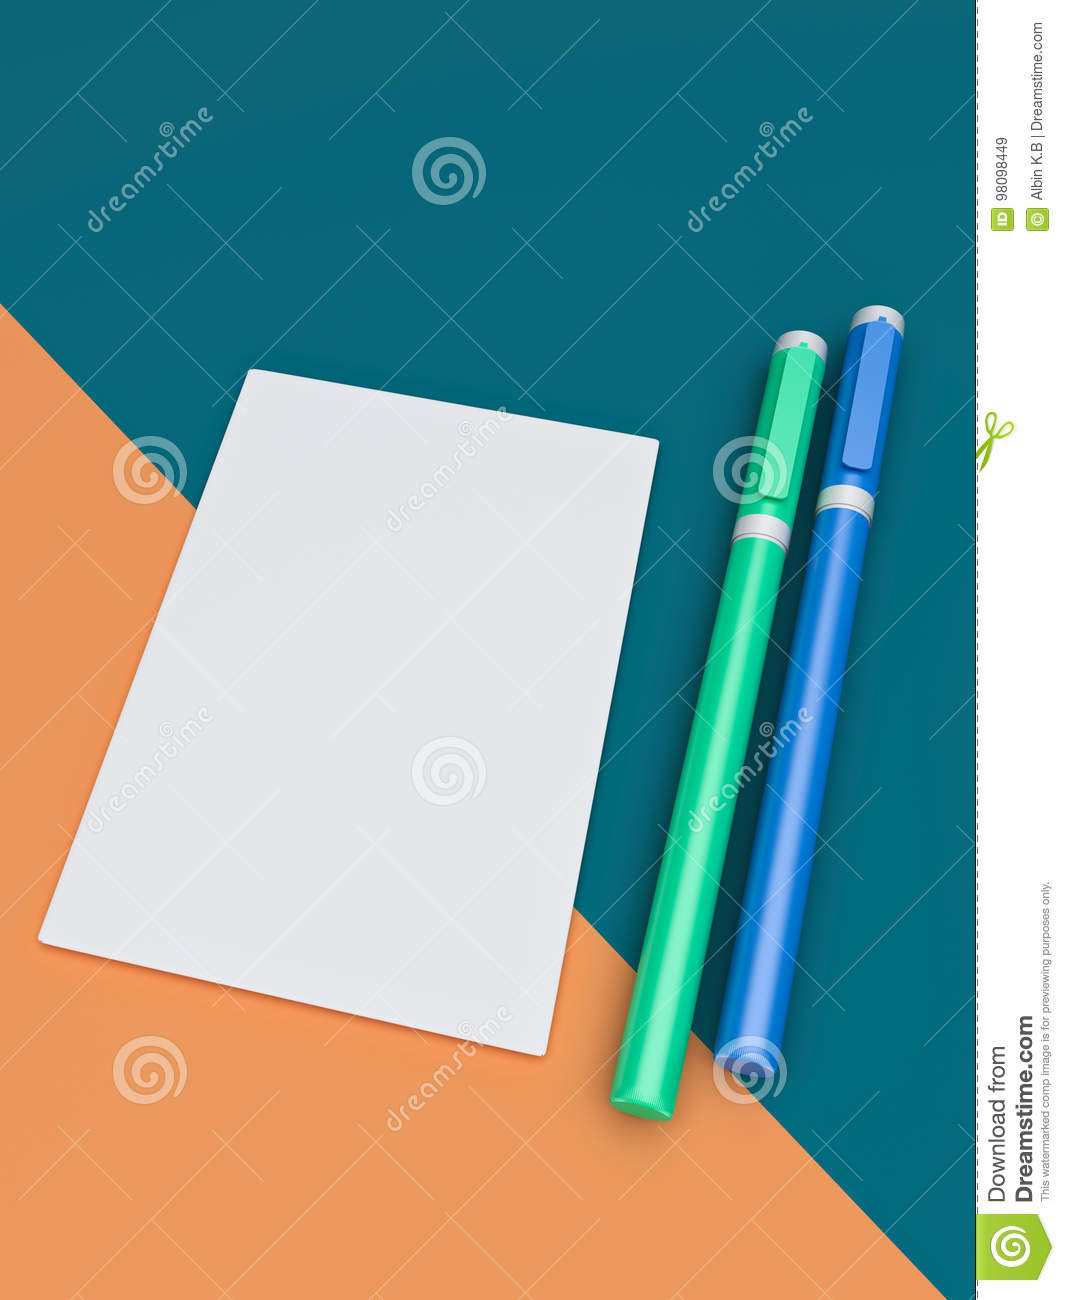 3d rendered paper and pens